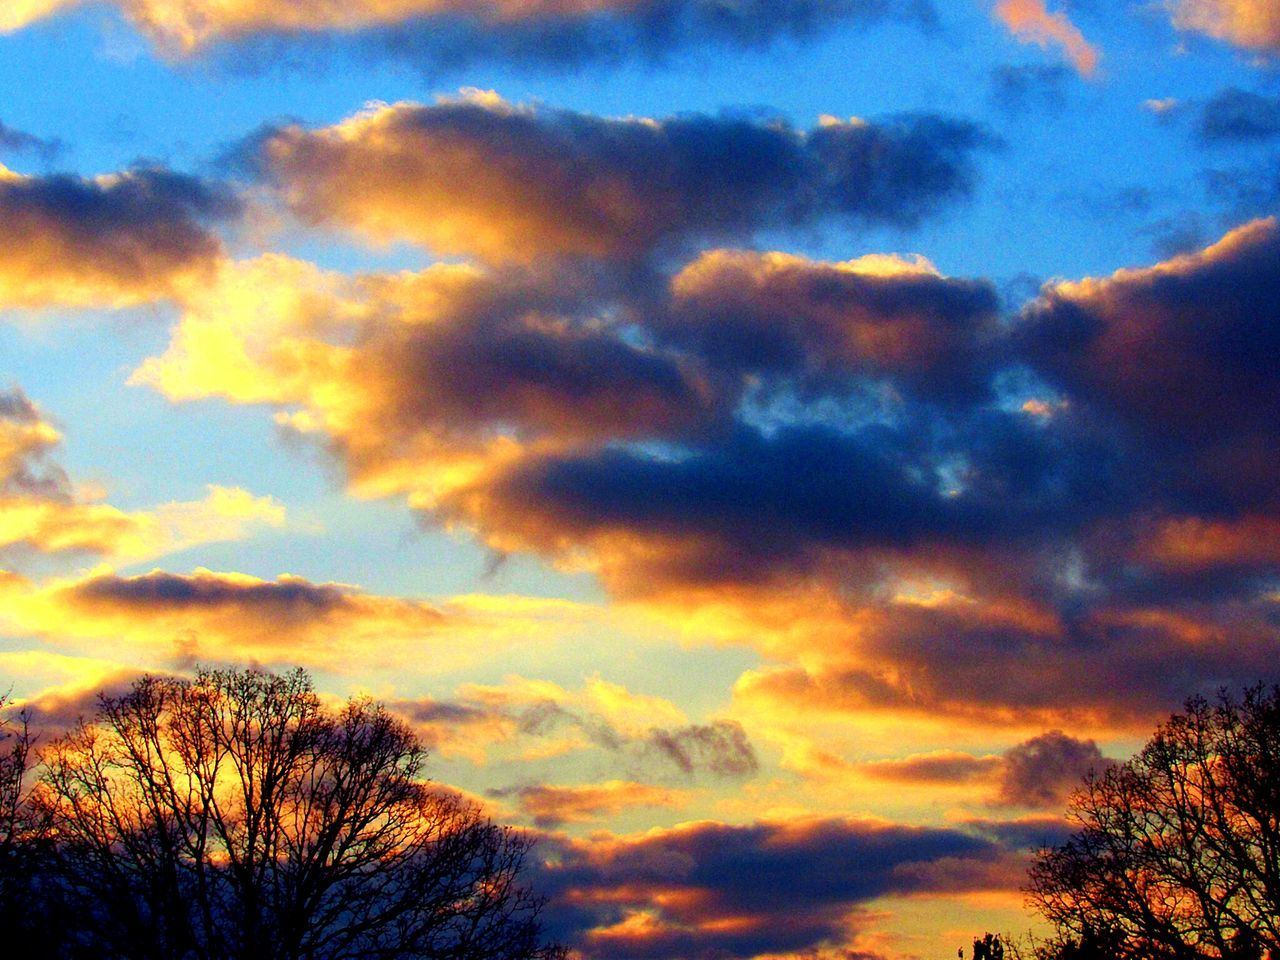 sky, cloud - sky, beauty in nature, silhouette, nature, scenics, low angle view, tranquility, sunset, tree, tranquil scene, dramatic sky, outdoors, no people, sky only, day, bare tree, multi colored